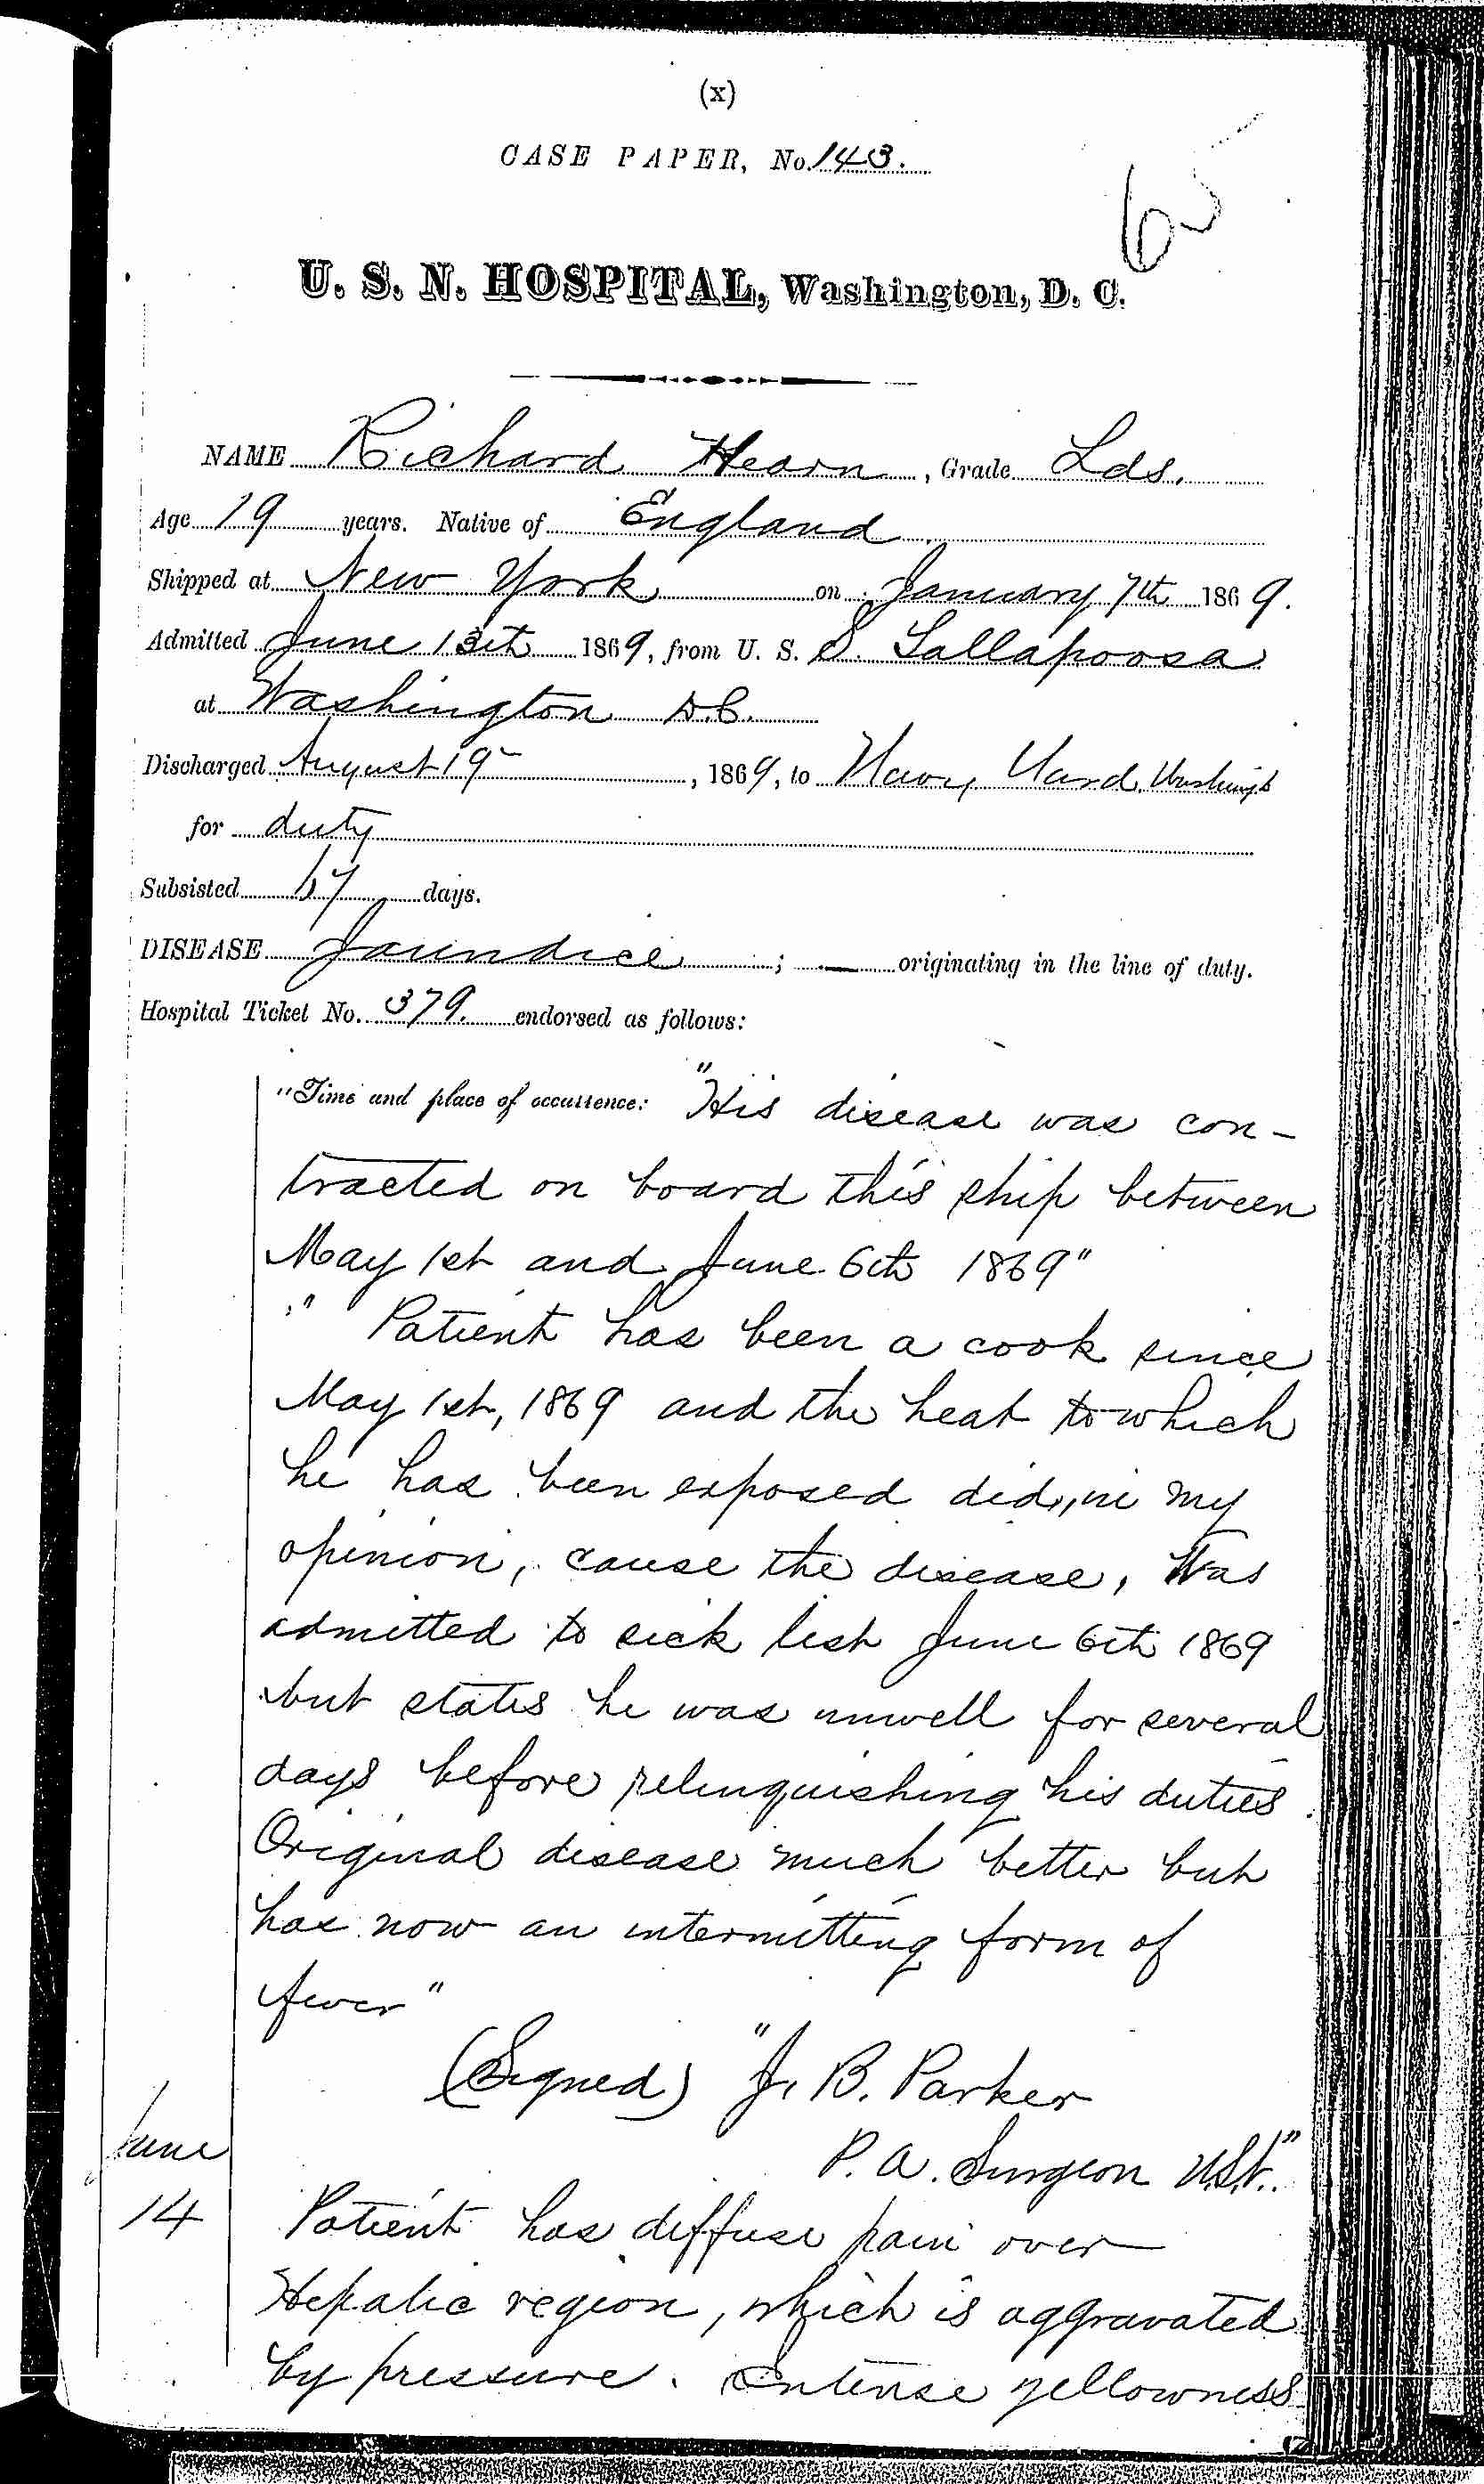 Entry for Richard Hearn (page 1 of 7) in the log Hospital Tickets and Case Papers - Naval Hospital - Washington, D.C. - 1868-69